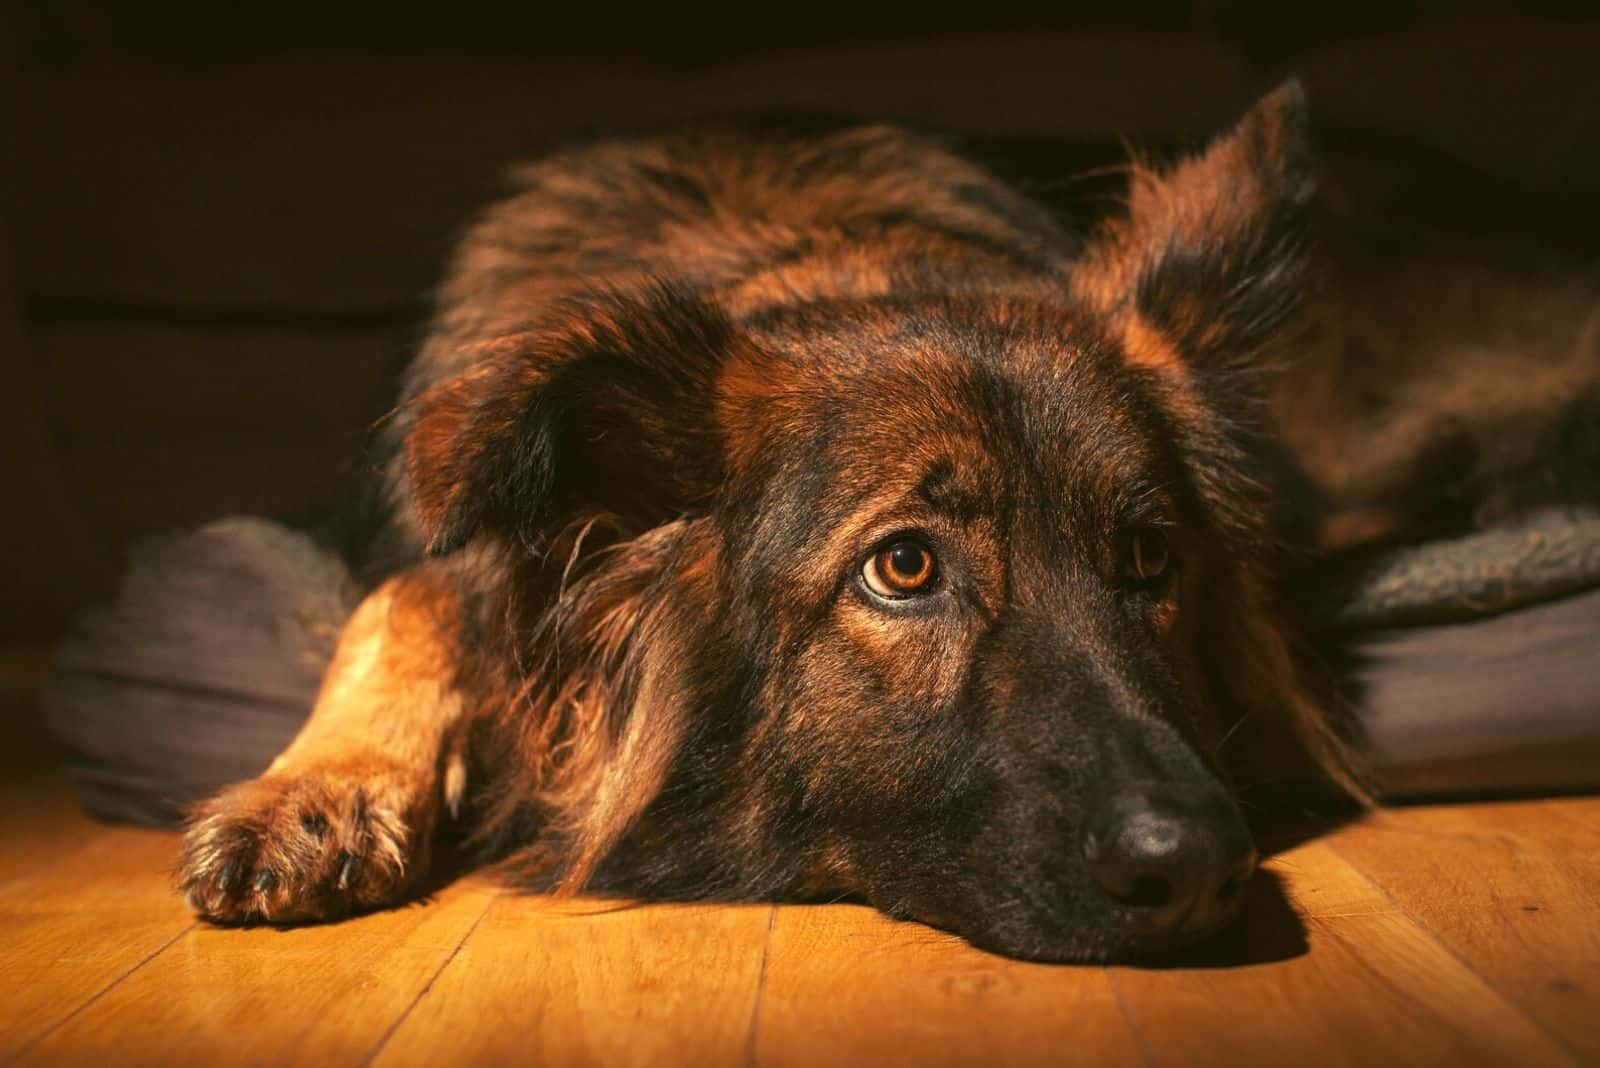 Relaxed German Shepherd Dog laid on his bed indoors on a wooden floor, lit with torch